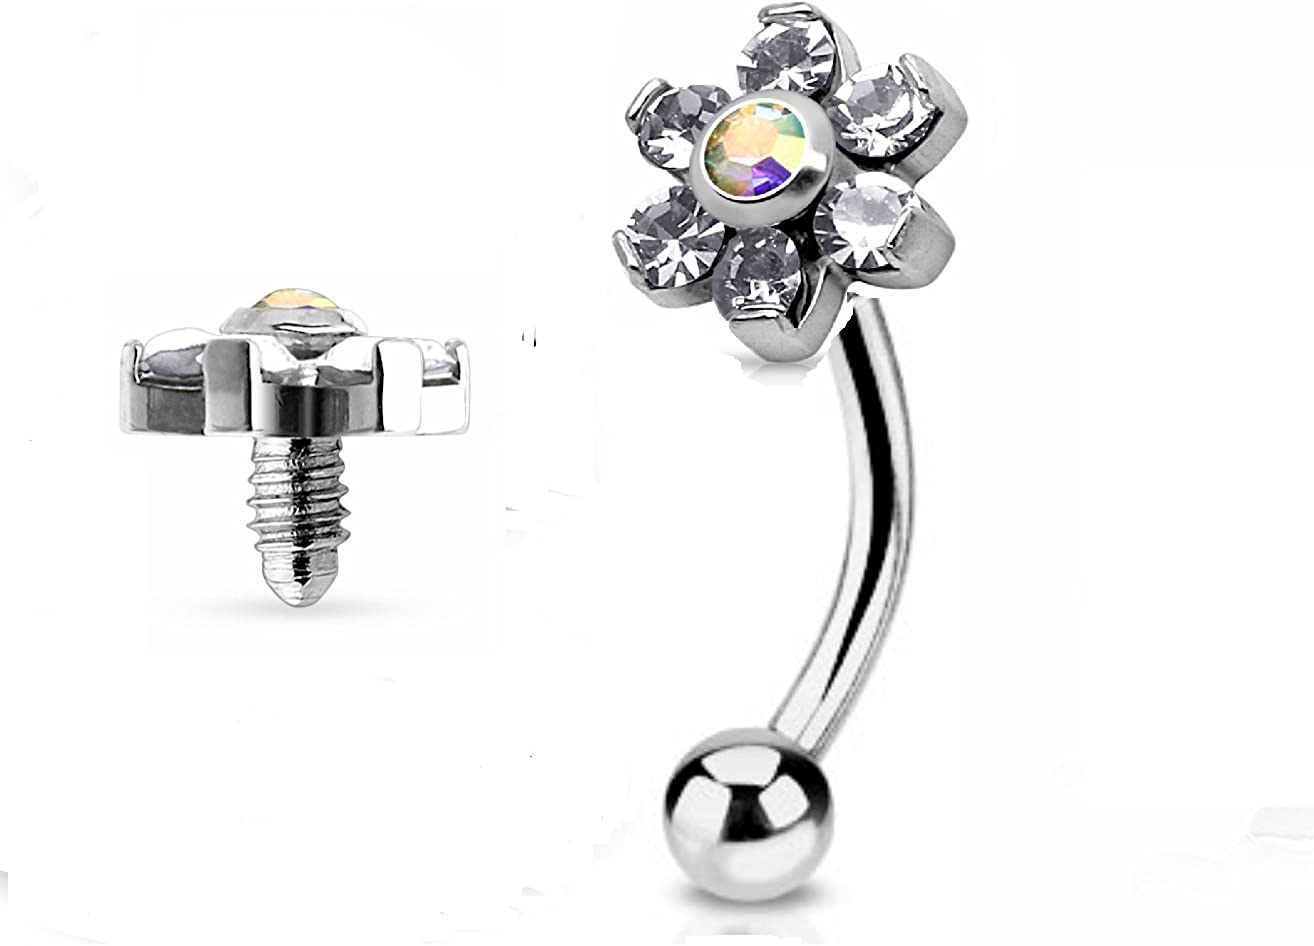 7ZACC Jeweled Twin Daisy Flowers Spinal Barbell Christina Vertical Hood VCH Jewelry Genital Piercing 1/2